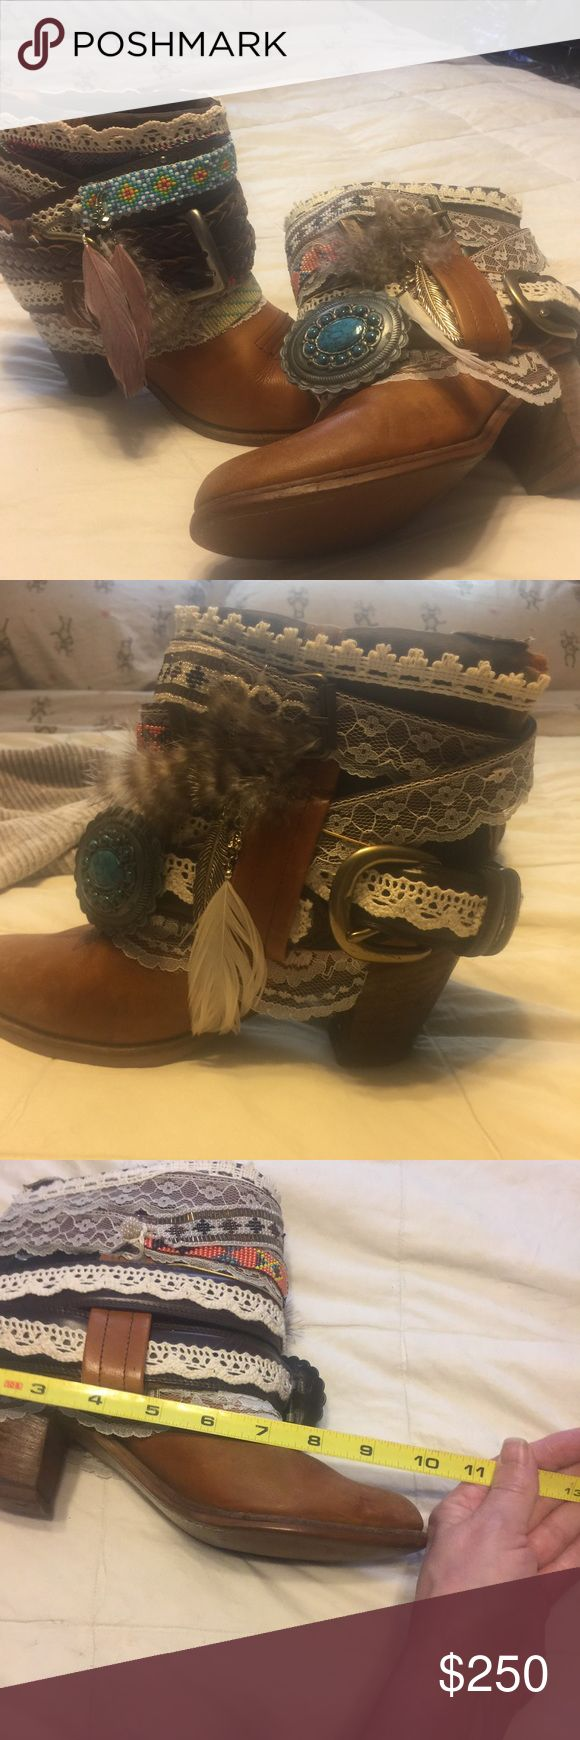 PRICE DROP Customized Western Boots..One Of A Kind I had these ladies western boots customized with Belts, feathers, lace with turquoise accents.  I love these boots.  Paid $287 for boots and then another$259 to have customized.  Unfortunately my feet are swollen from medical treatments and I can not get my foot into them.  My loss your new treasure! If you have any questions, please, ask Shoes Ankle Boots & Booties